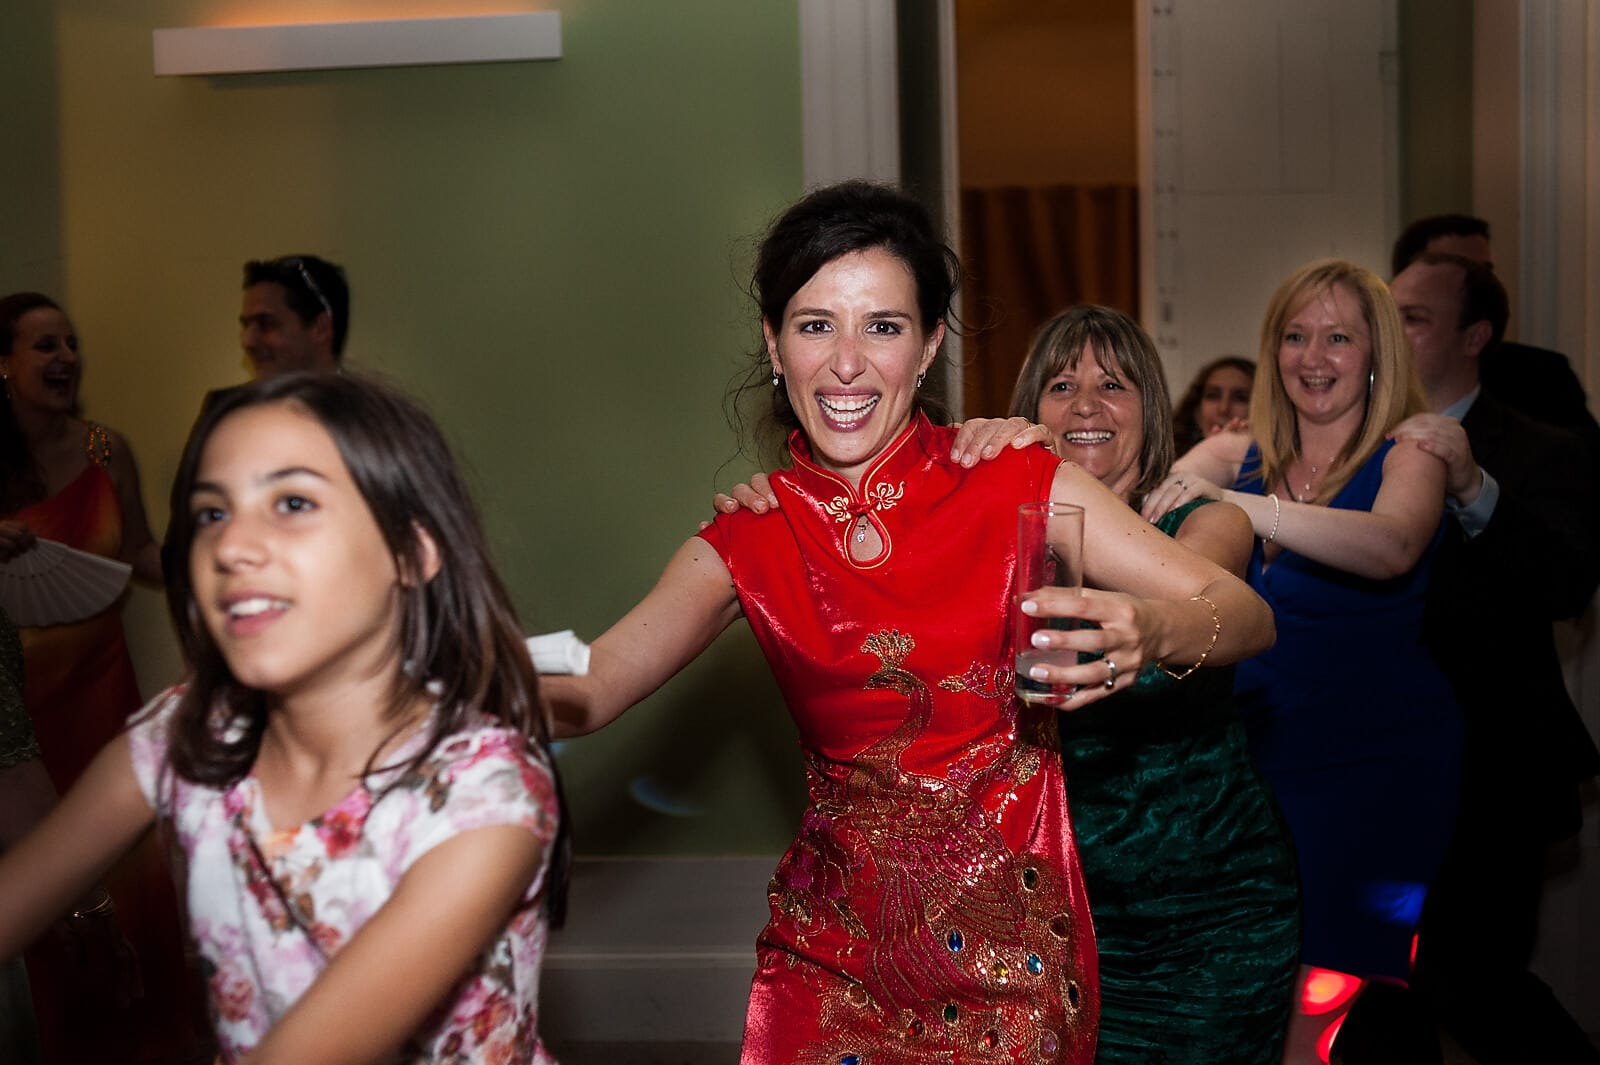 Bride dances in a conga line at her destination wedding